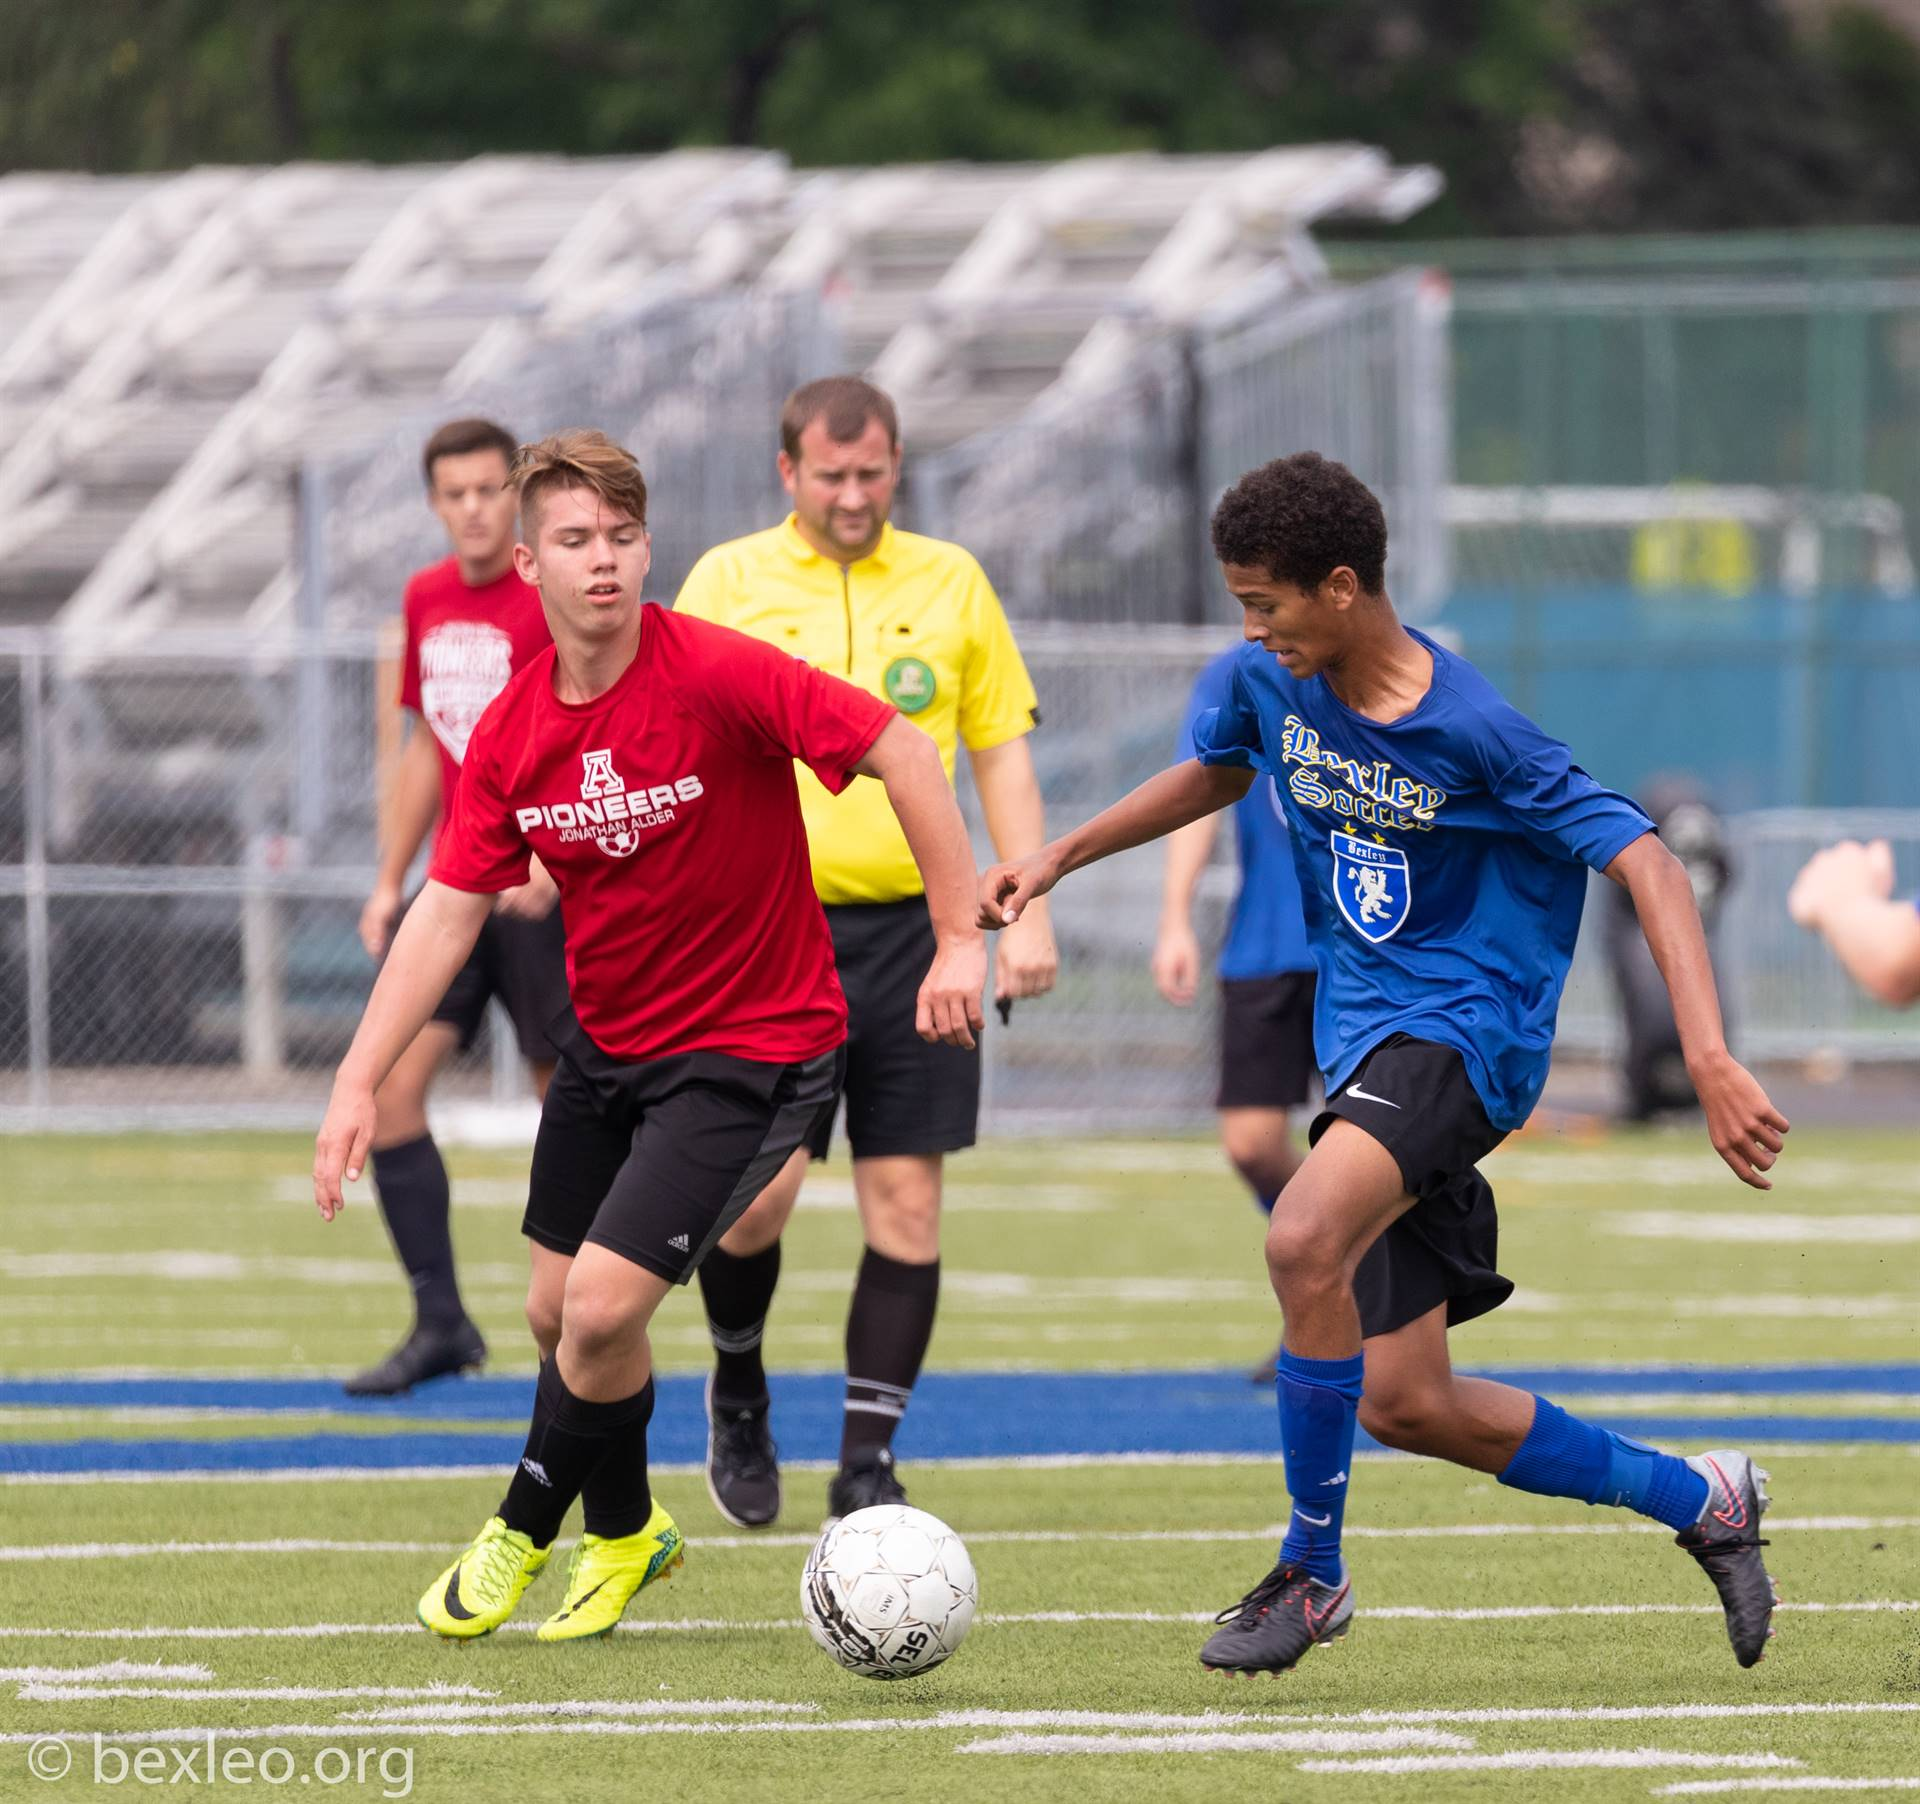 Soccer player Miles Joseph secures possession of the ball